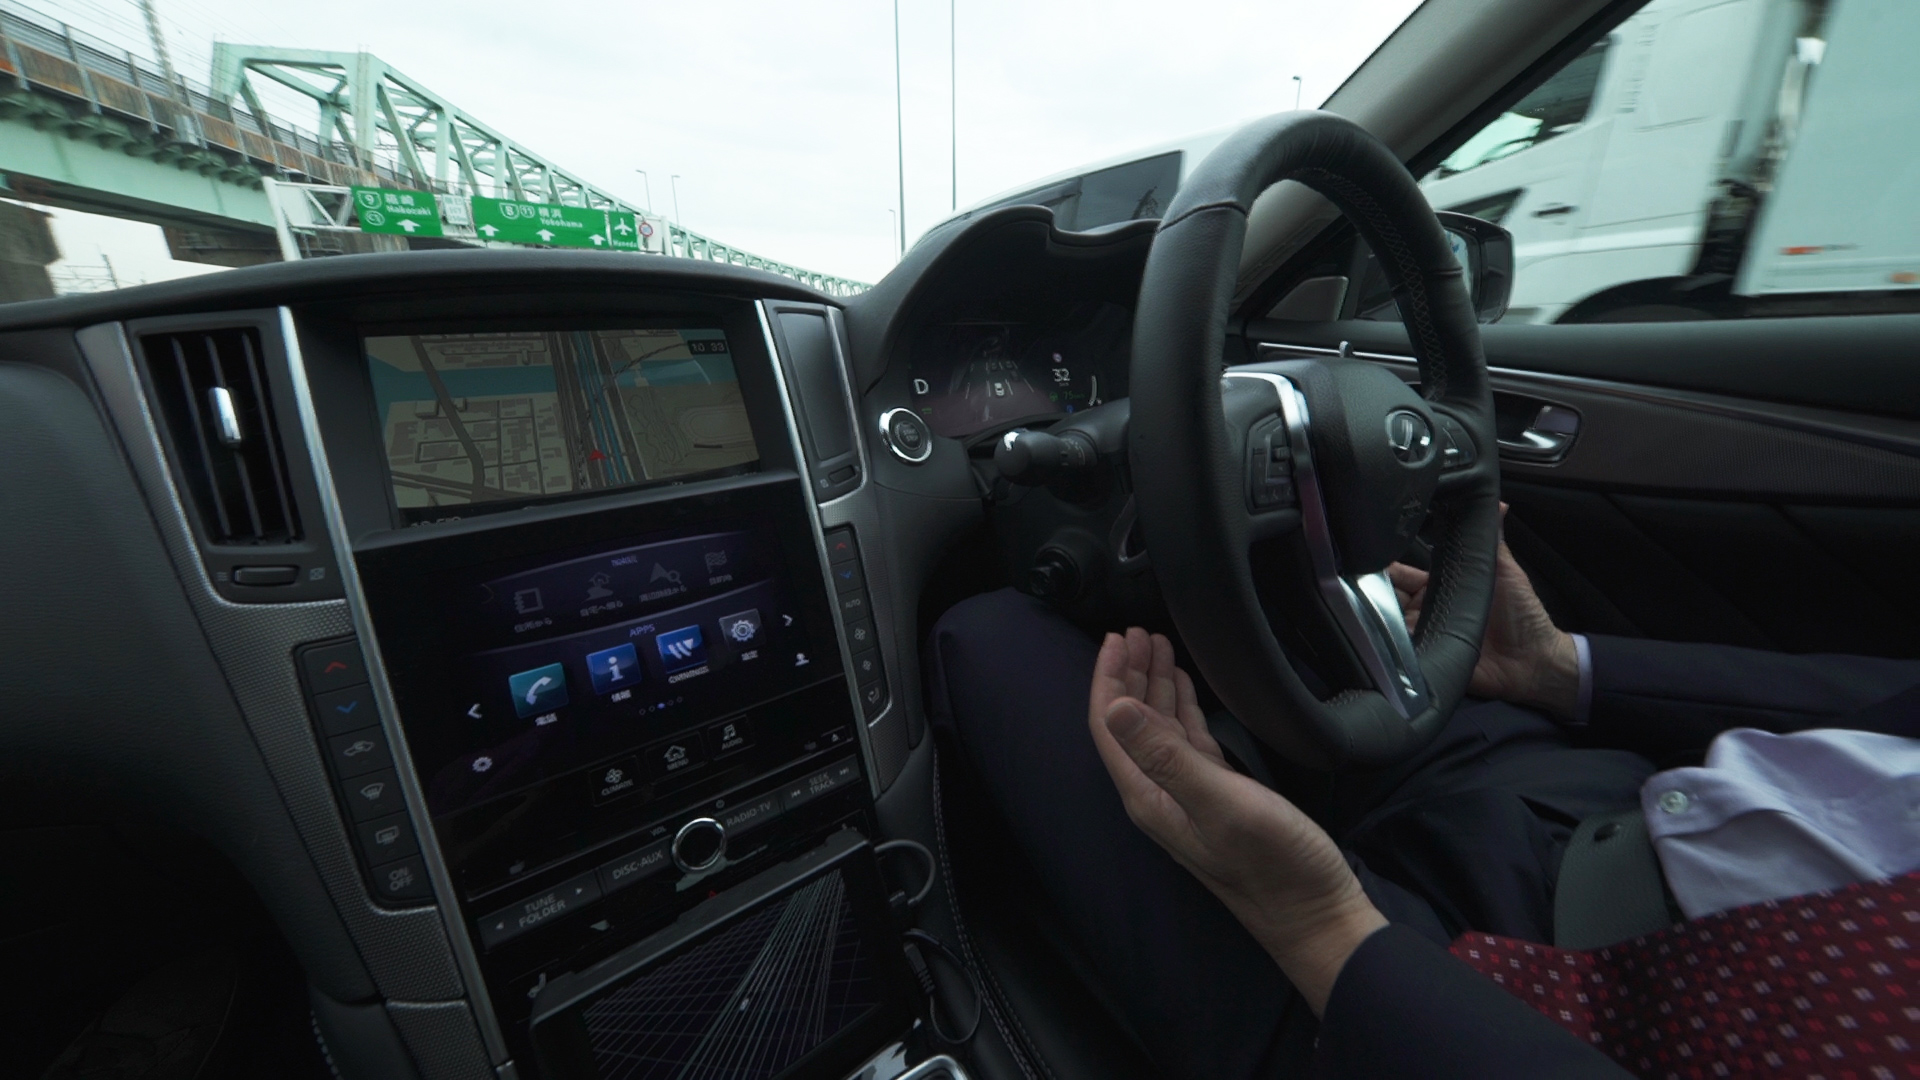 The Nissan driverless car hits the Tokyo highway - CNN Style